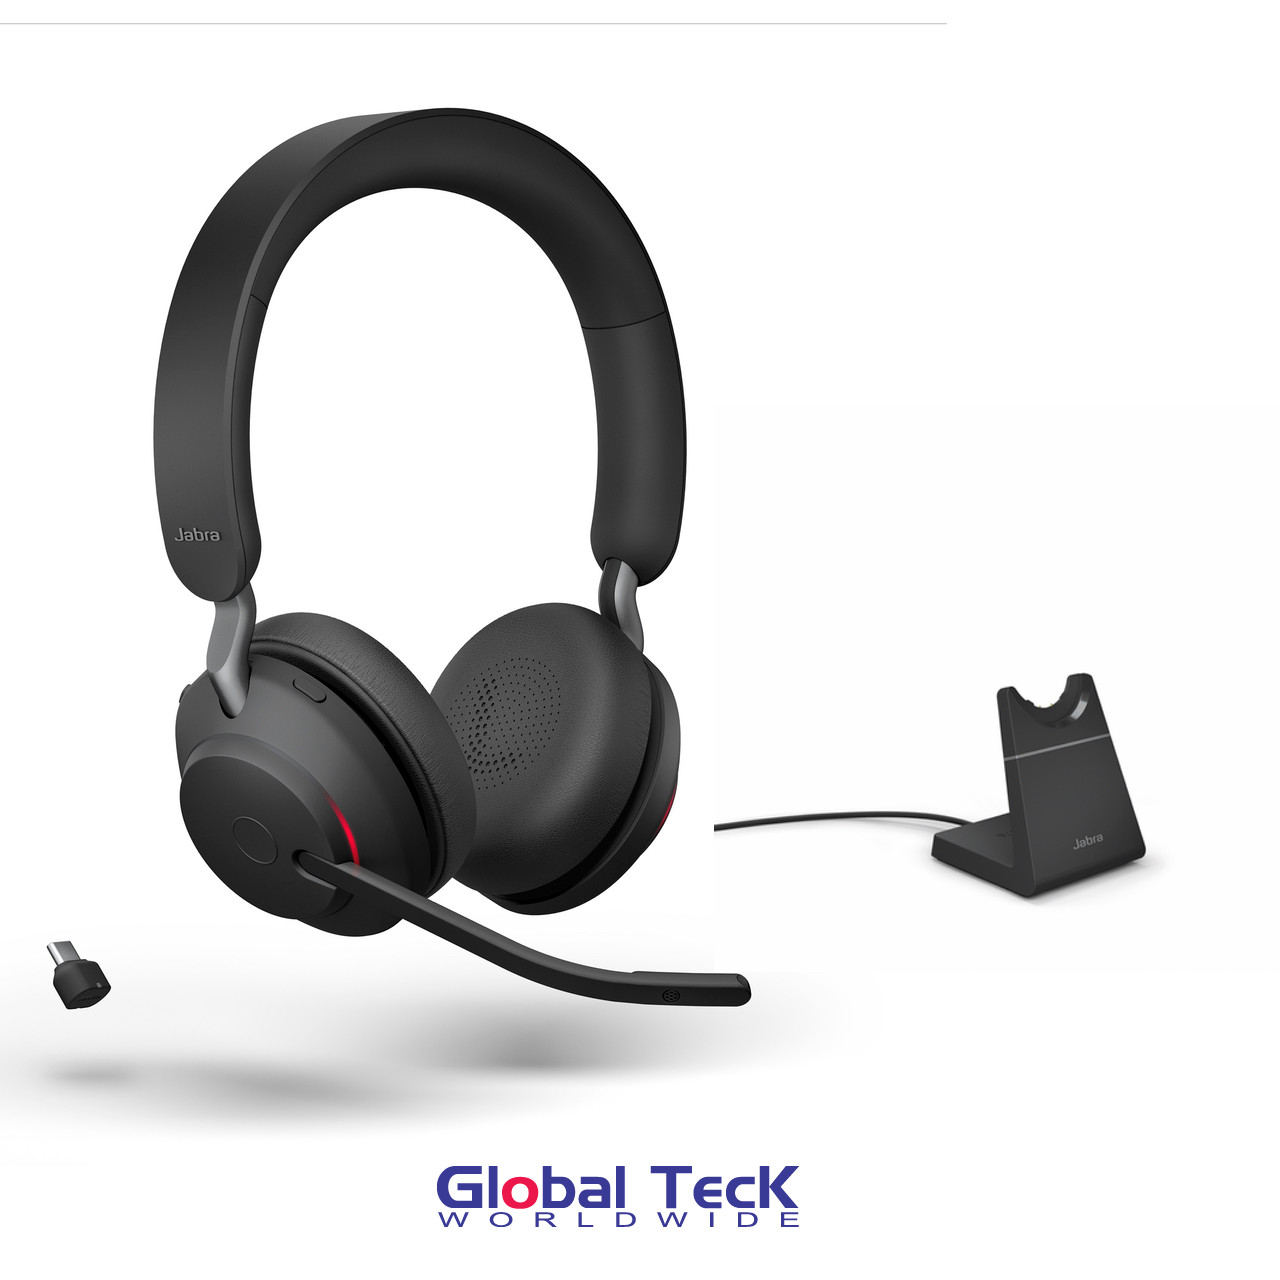 Jabra Evolve2 65 Stereo Wireless Headset Black Uc Version Includes Usb C Bluetooth Dongle And Charging Stand Compatible With Softphones Smartphones Tablets Pc Mac 26599 989 889